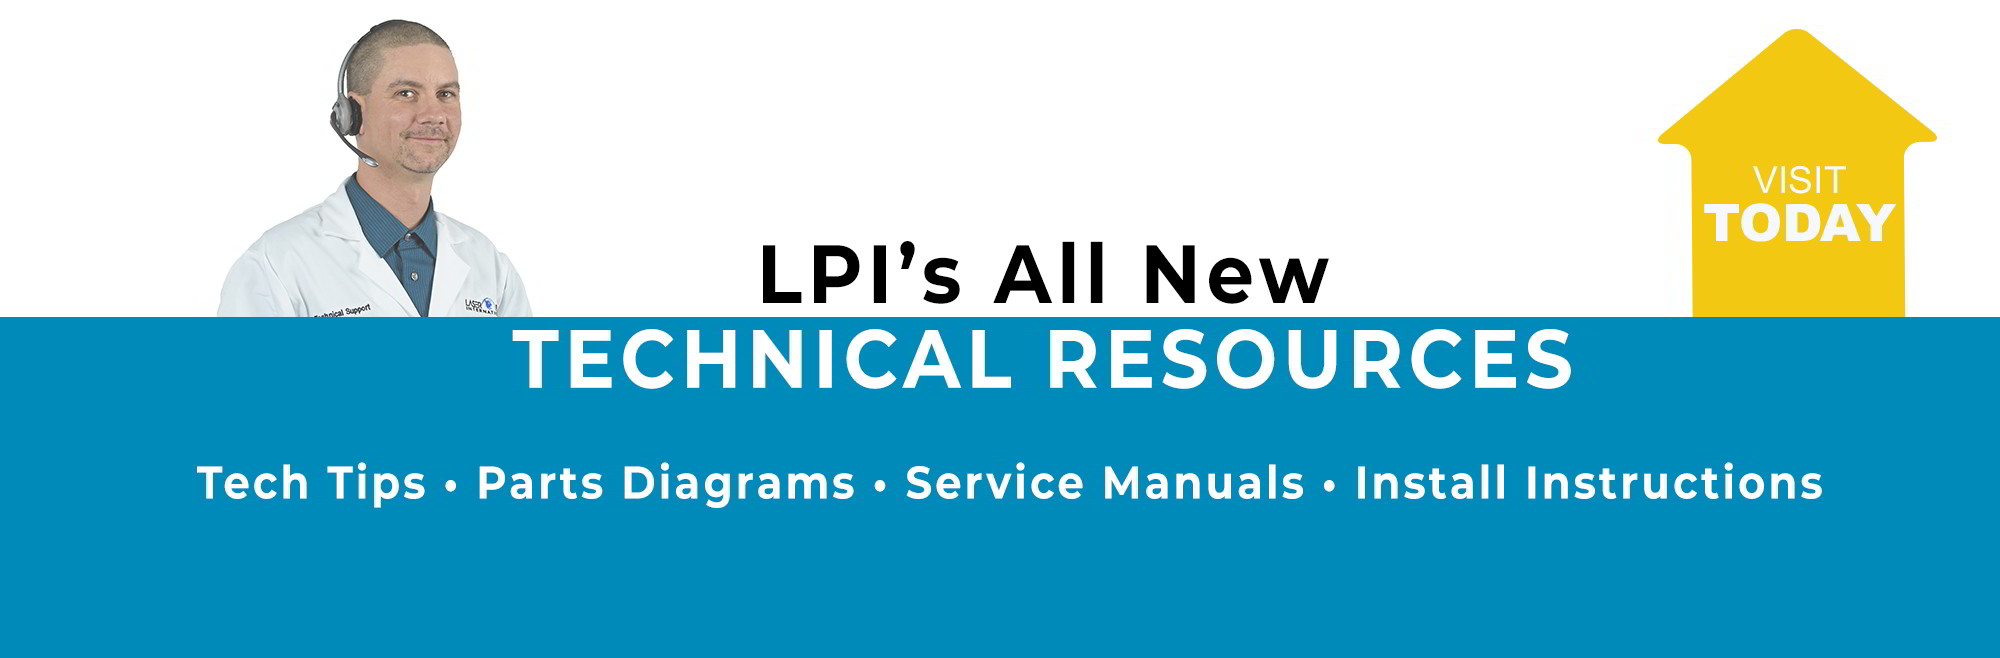 Visit Technical Resources